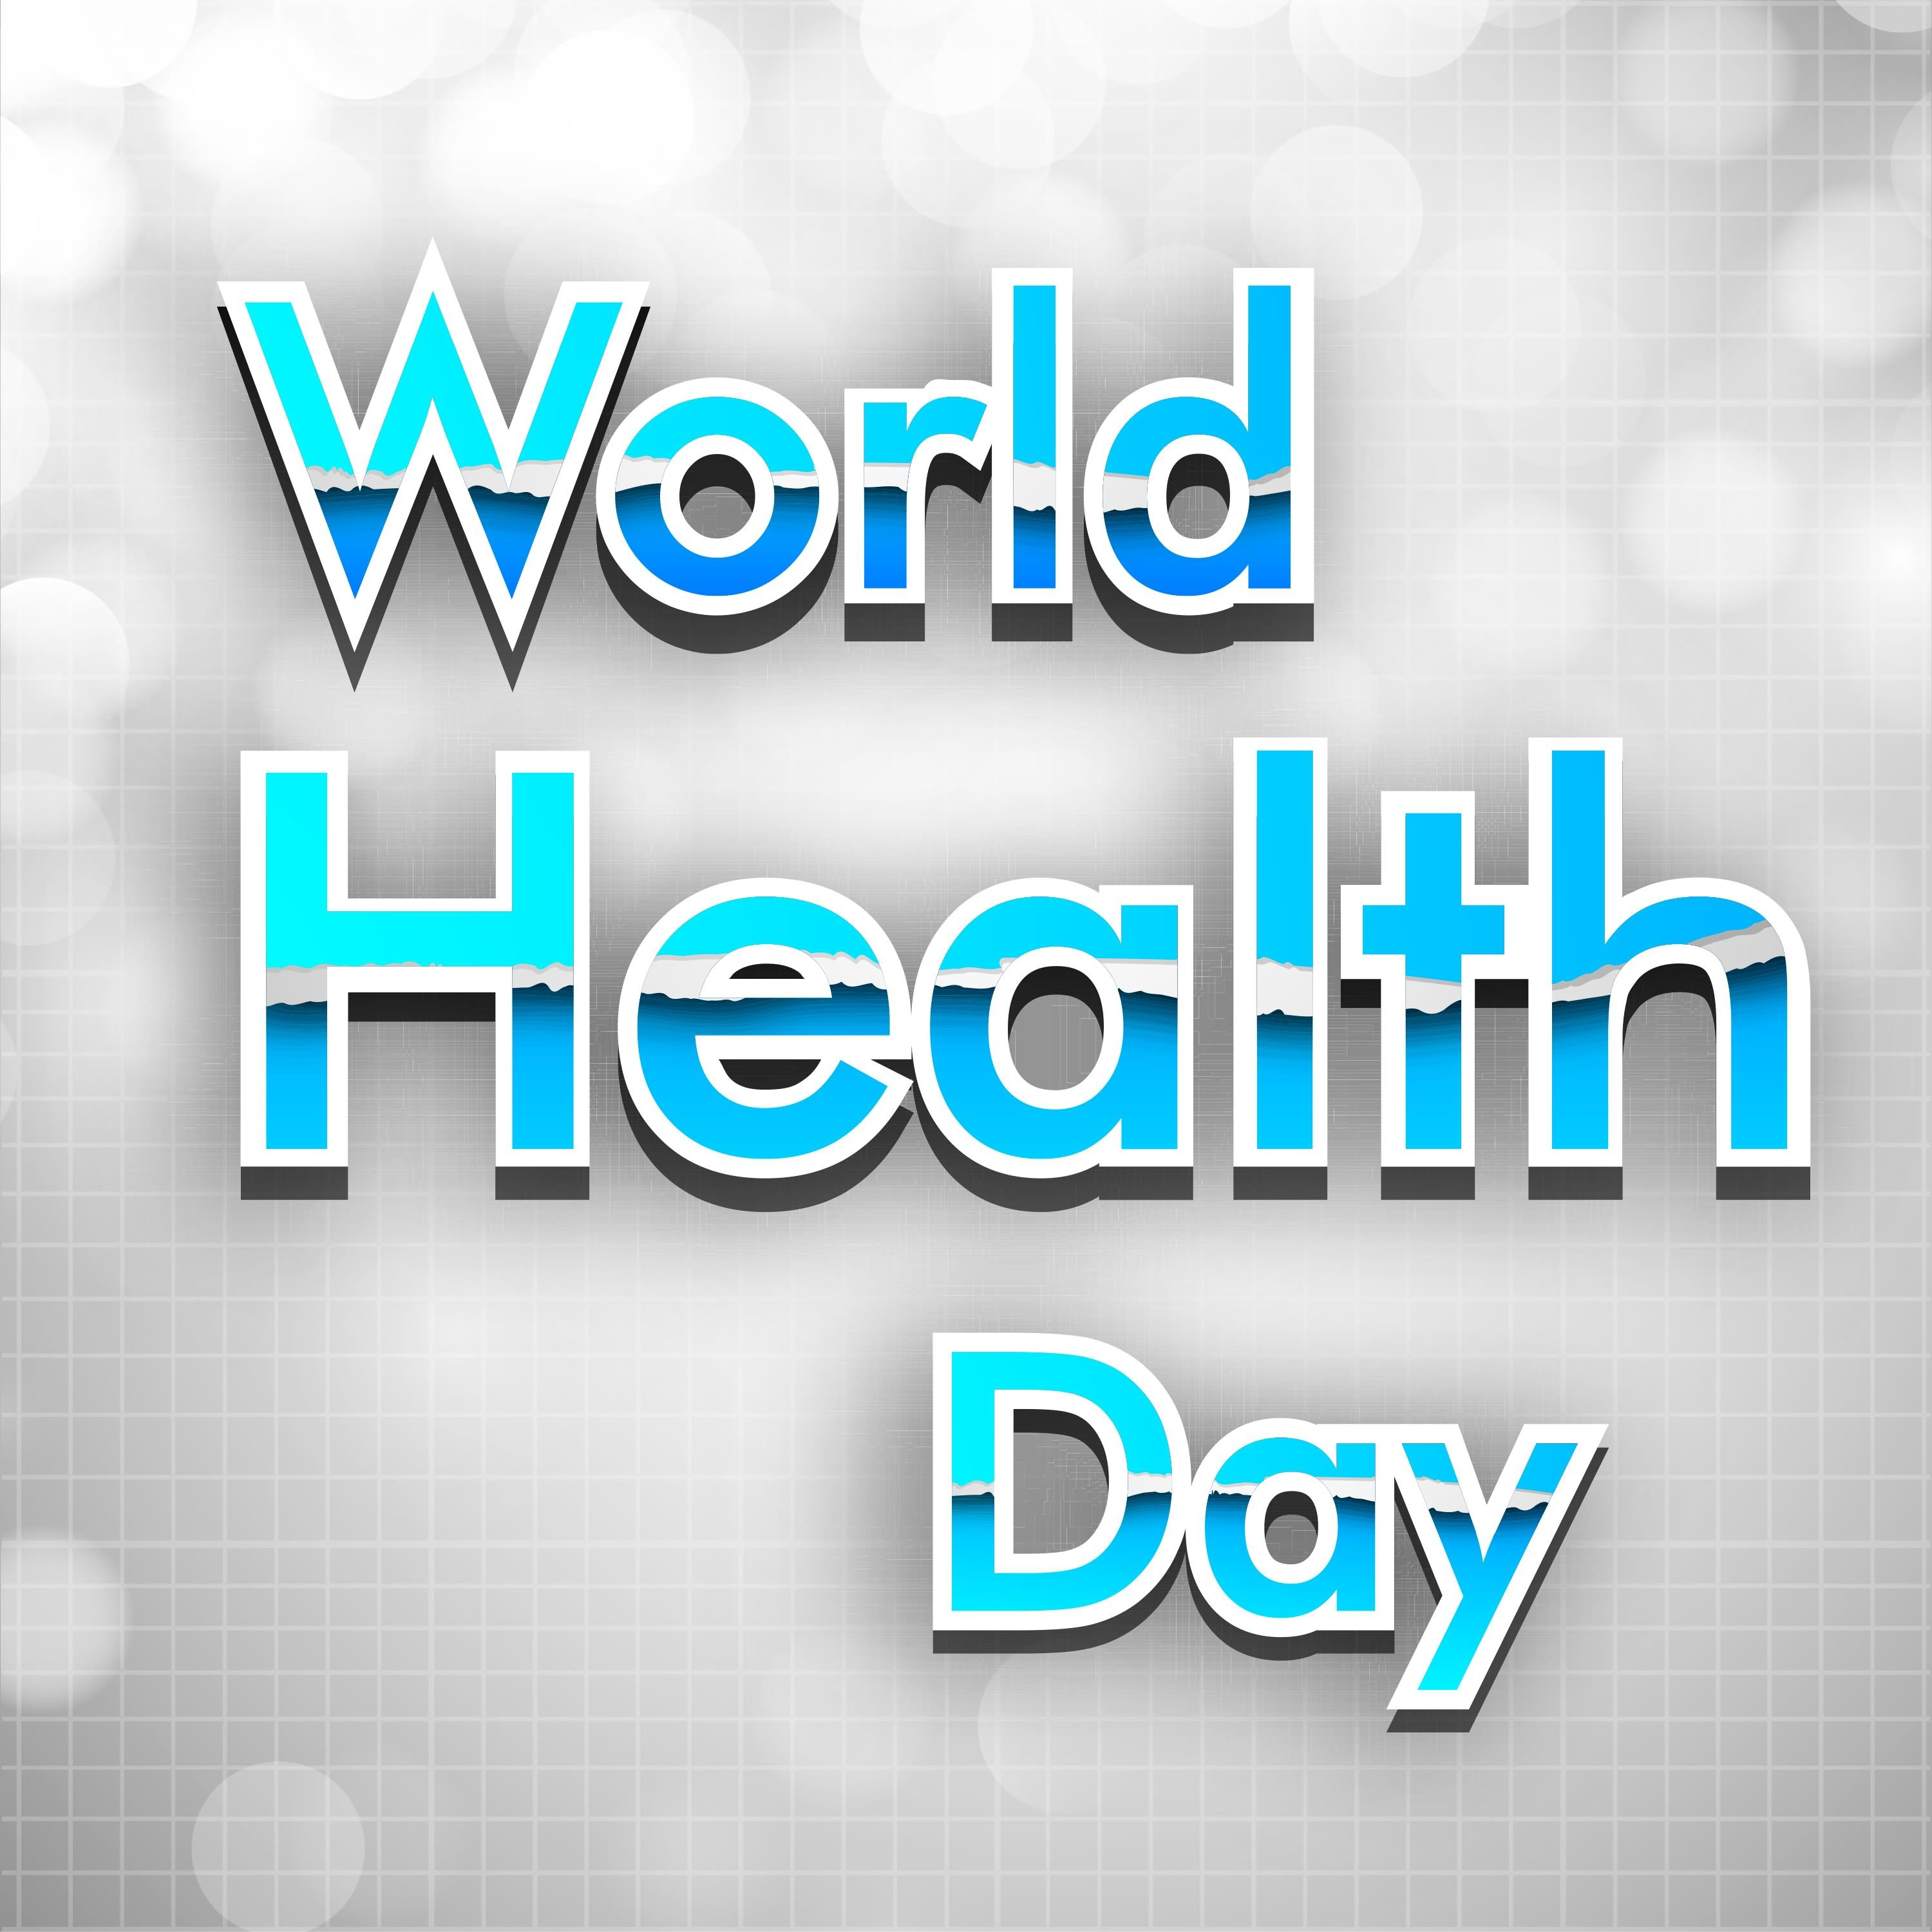 World Health Day Poster